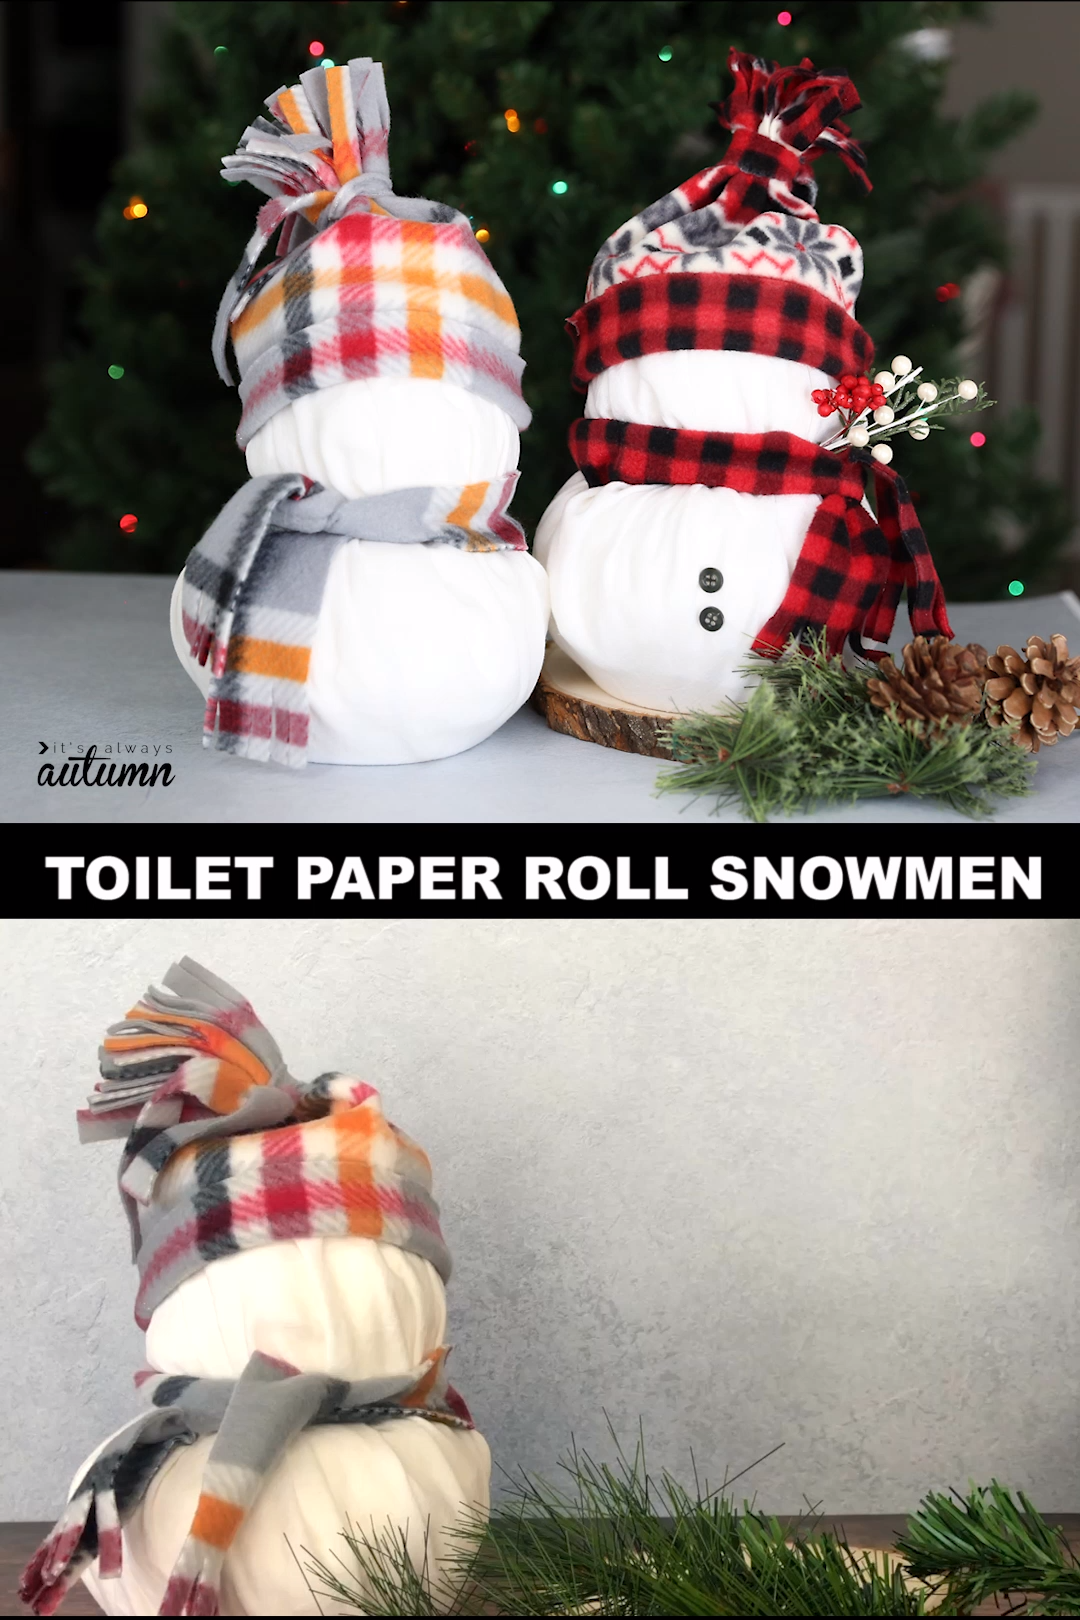 These adorable snowmen are made from rolls of toilet paper! This is a fun and easy Christmas craft. Great craft night idea!